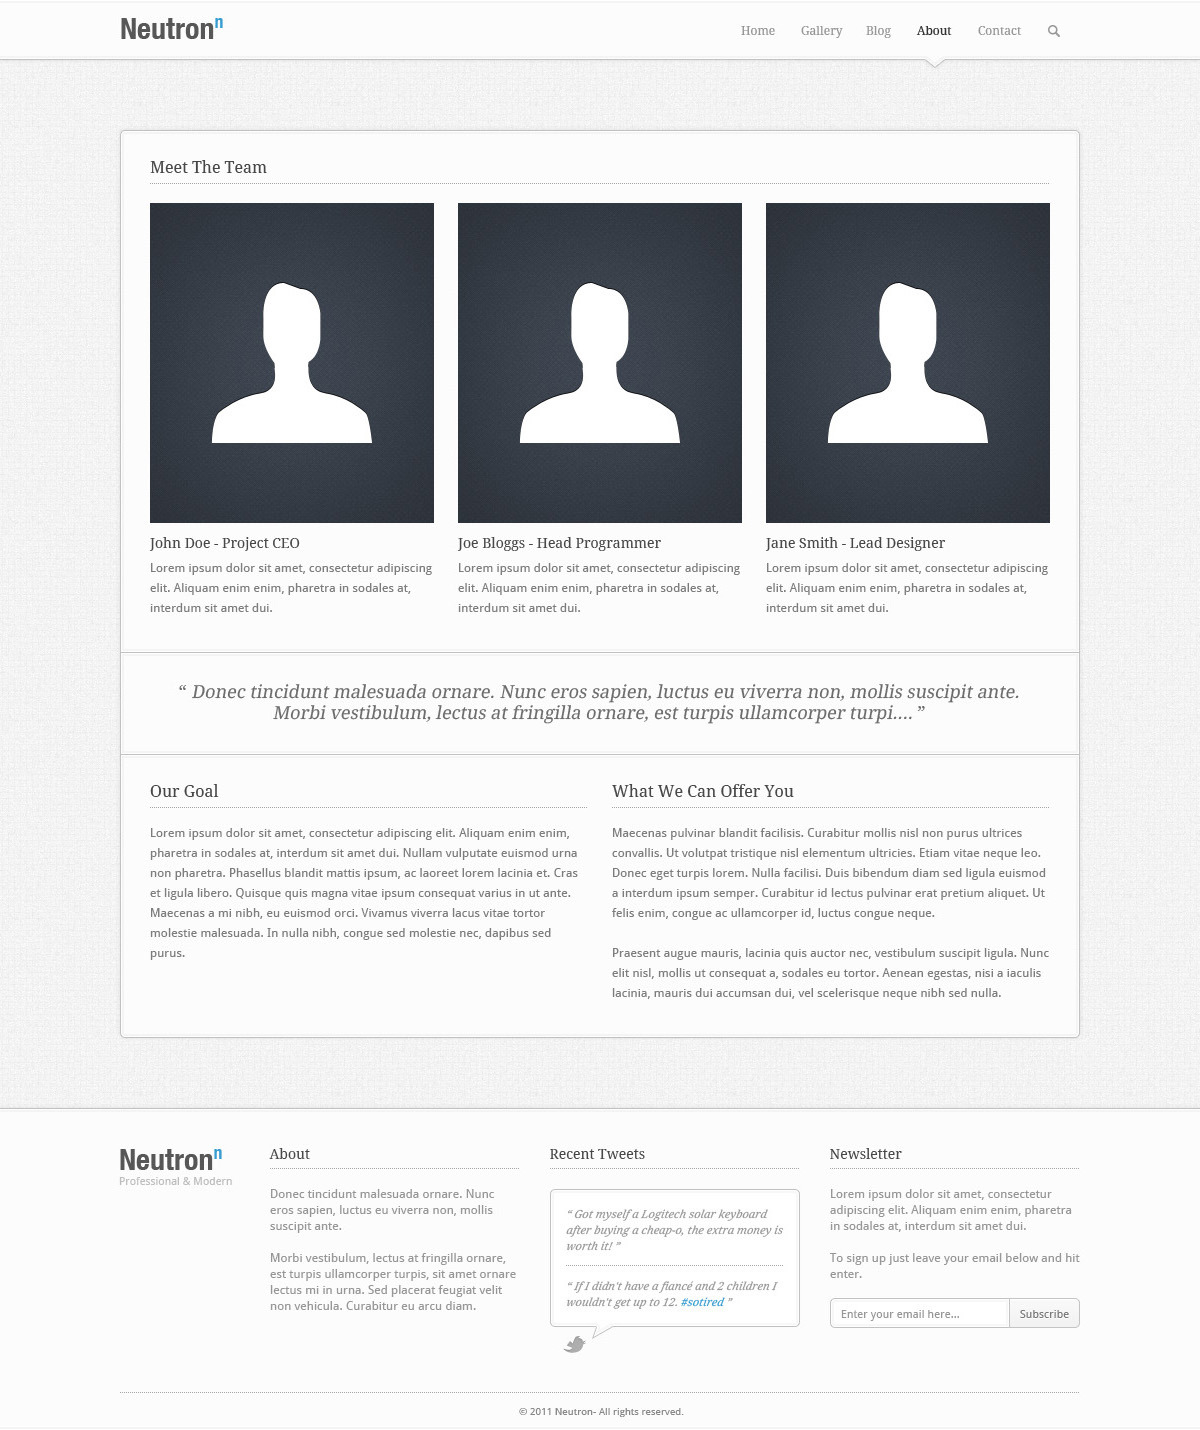 Neutron - PSD Theme - The About Us section of the Neutron theme, containing sections for: Meet The Team, A Full Width Quote, Our Goal, What We Can Offer You, plus the header and footer sections.